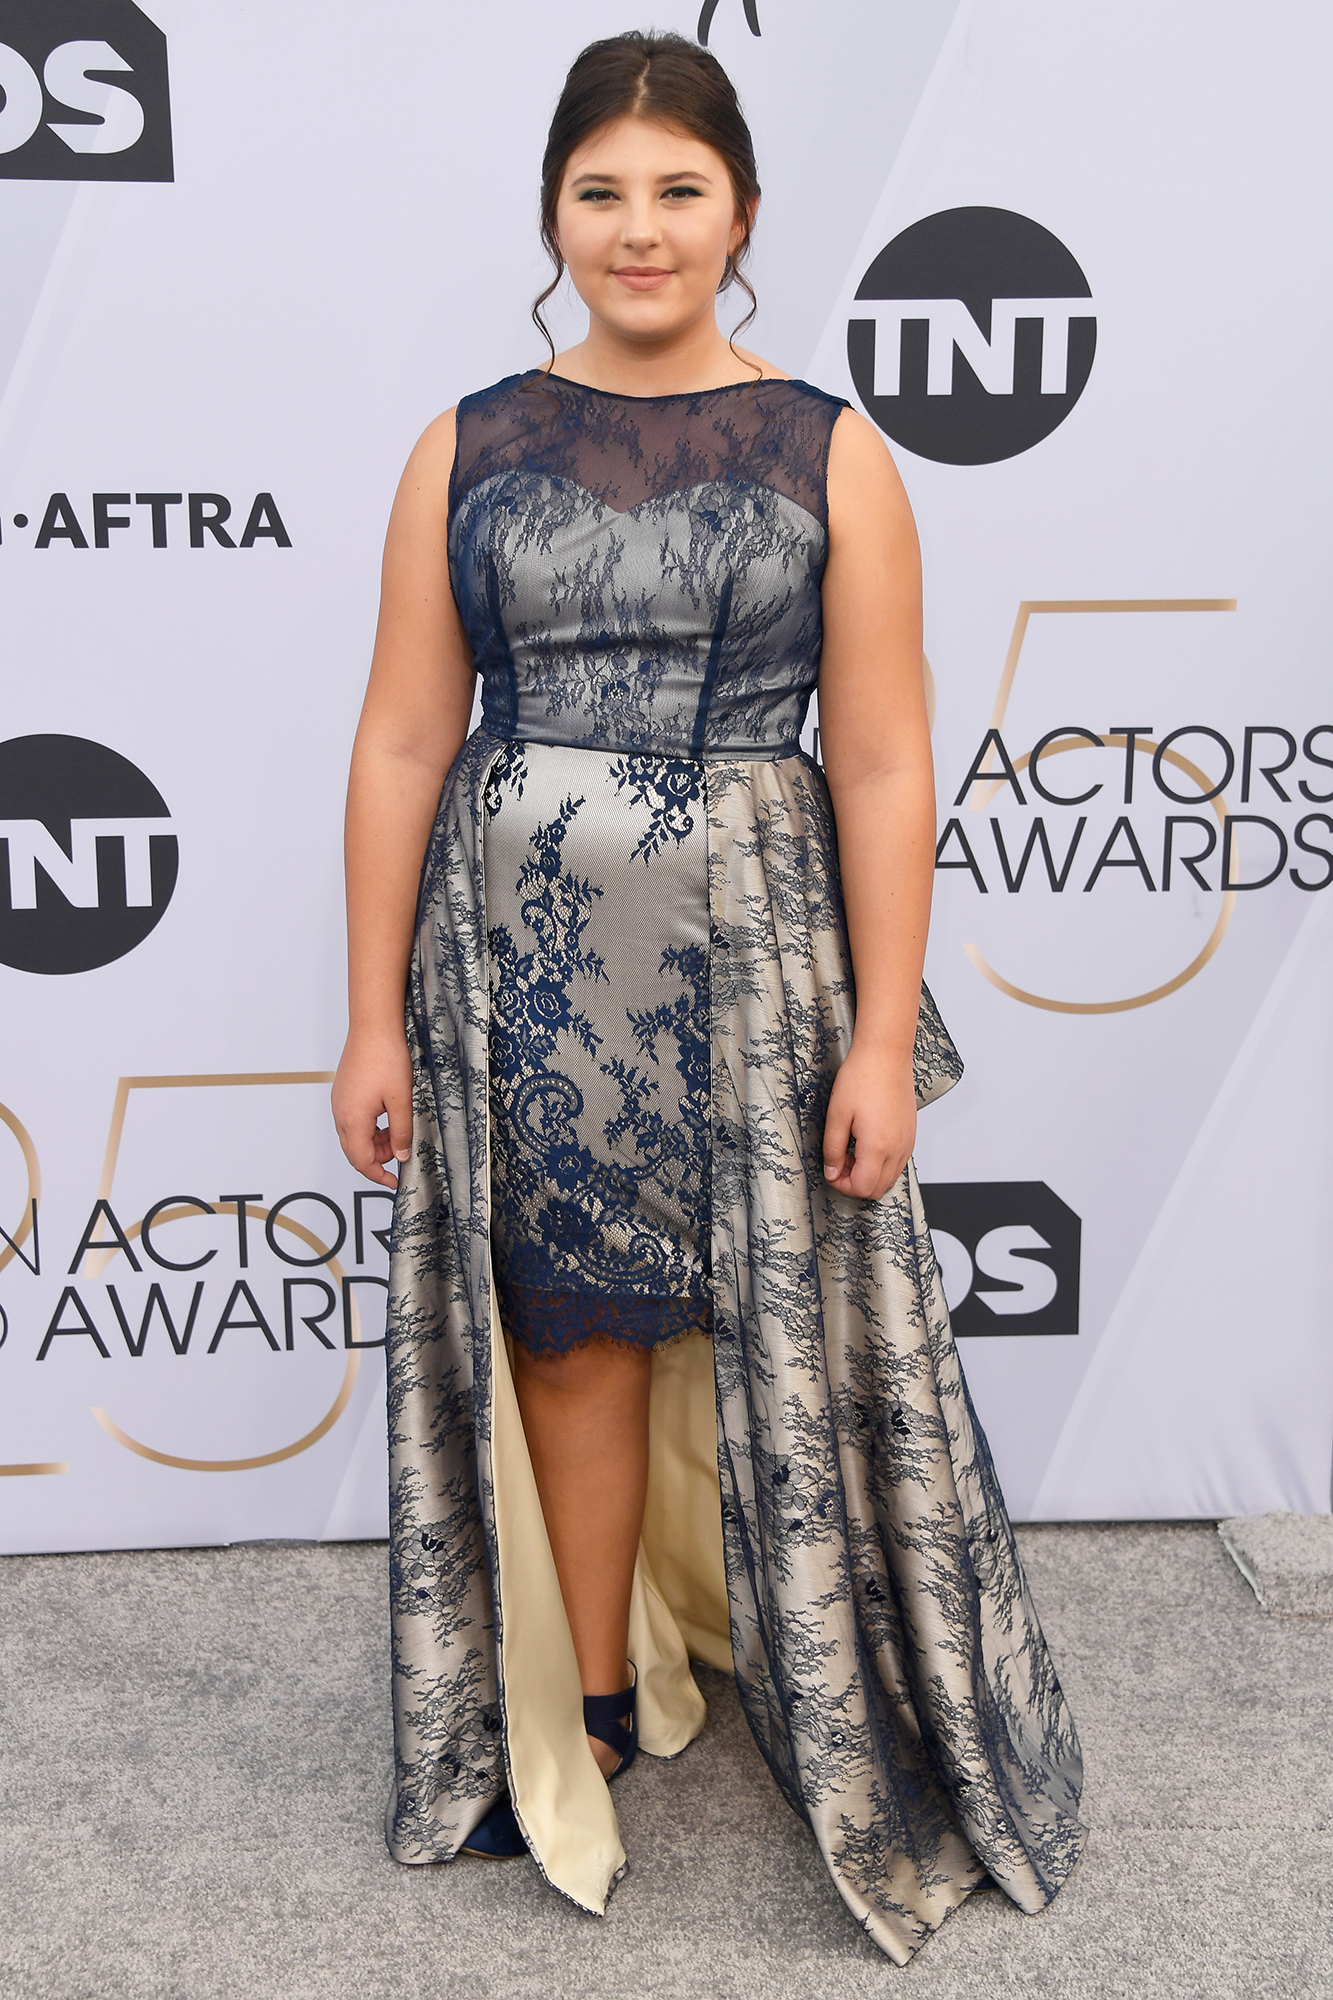 Let Them Eat! Melissa McCarthy, Gemma Chan and More Stars Who Brought Food to Awards Shows - The This Is Us actress attended the Screen Actors Guild Awards in January 2019 and brought some Girl Scout cookies to sell to the A-list crowd.